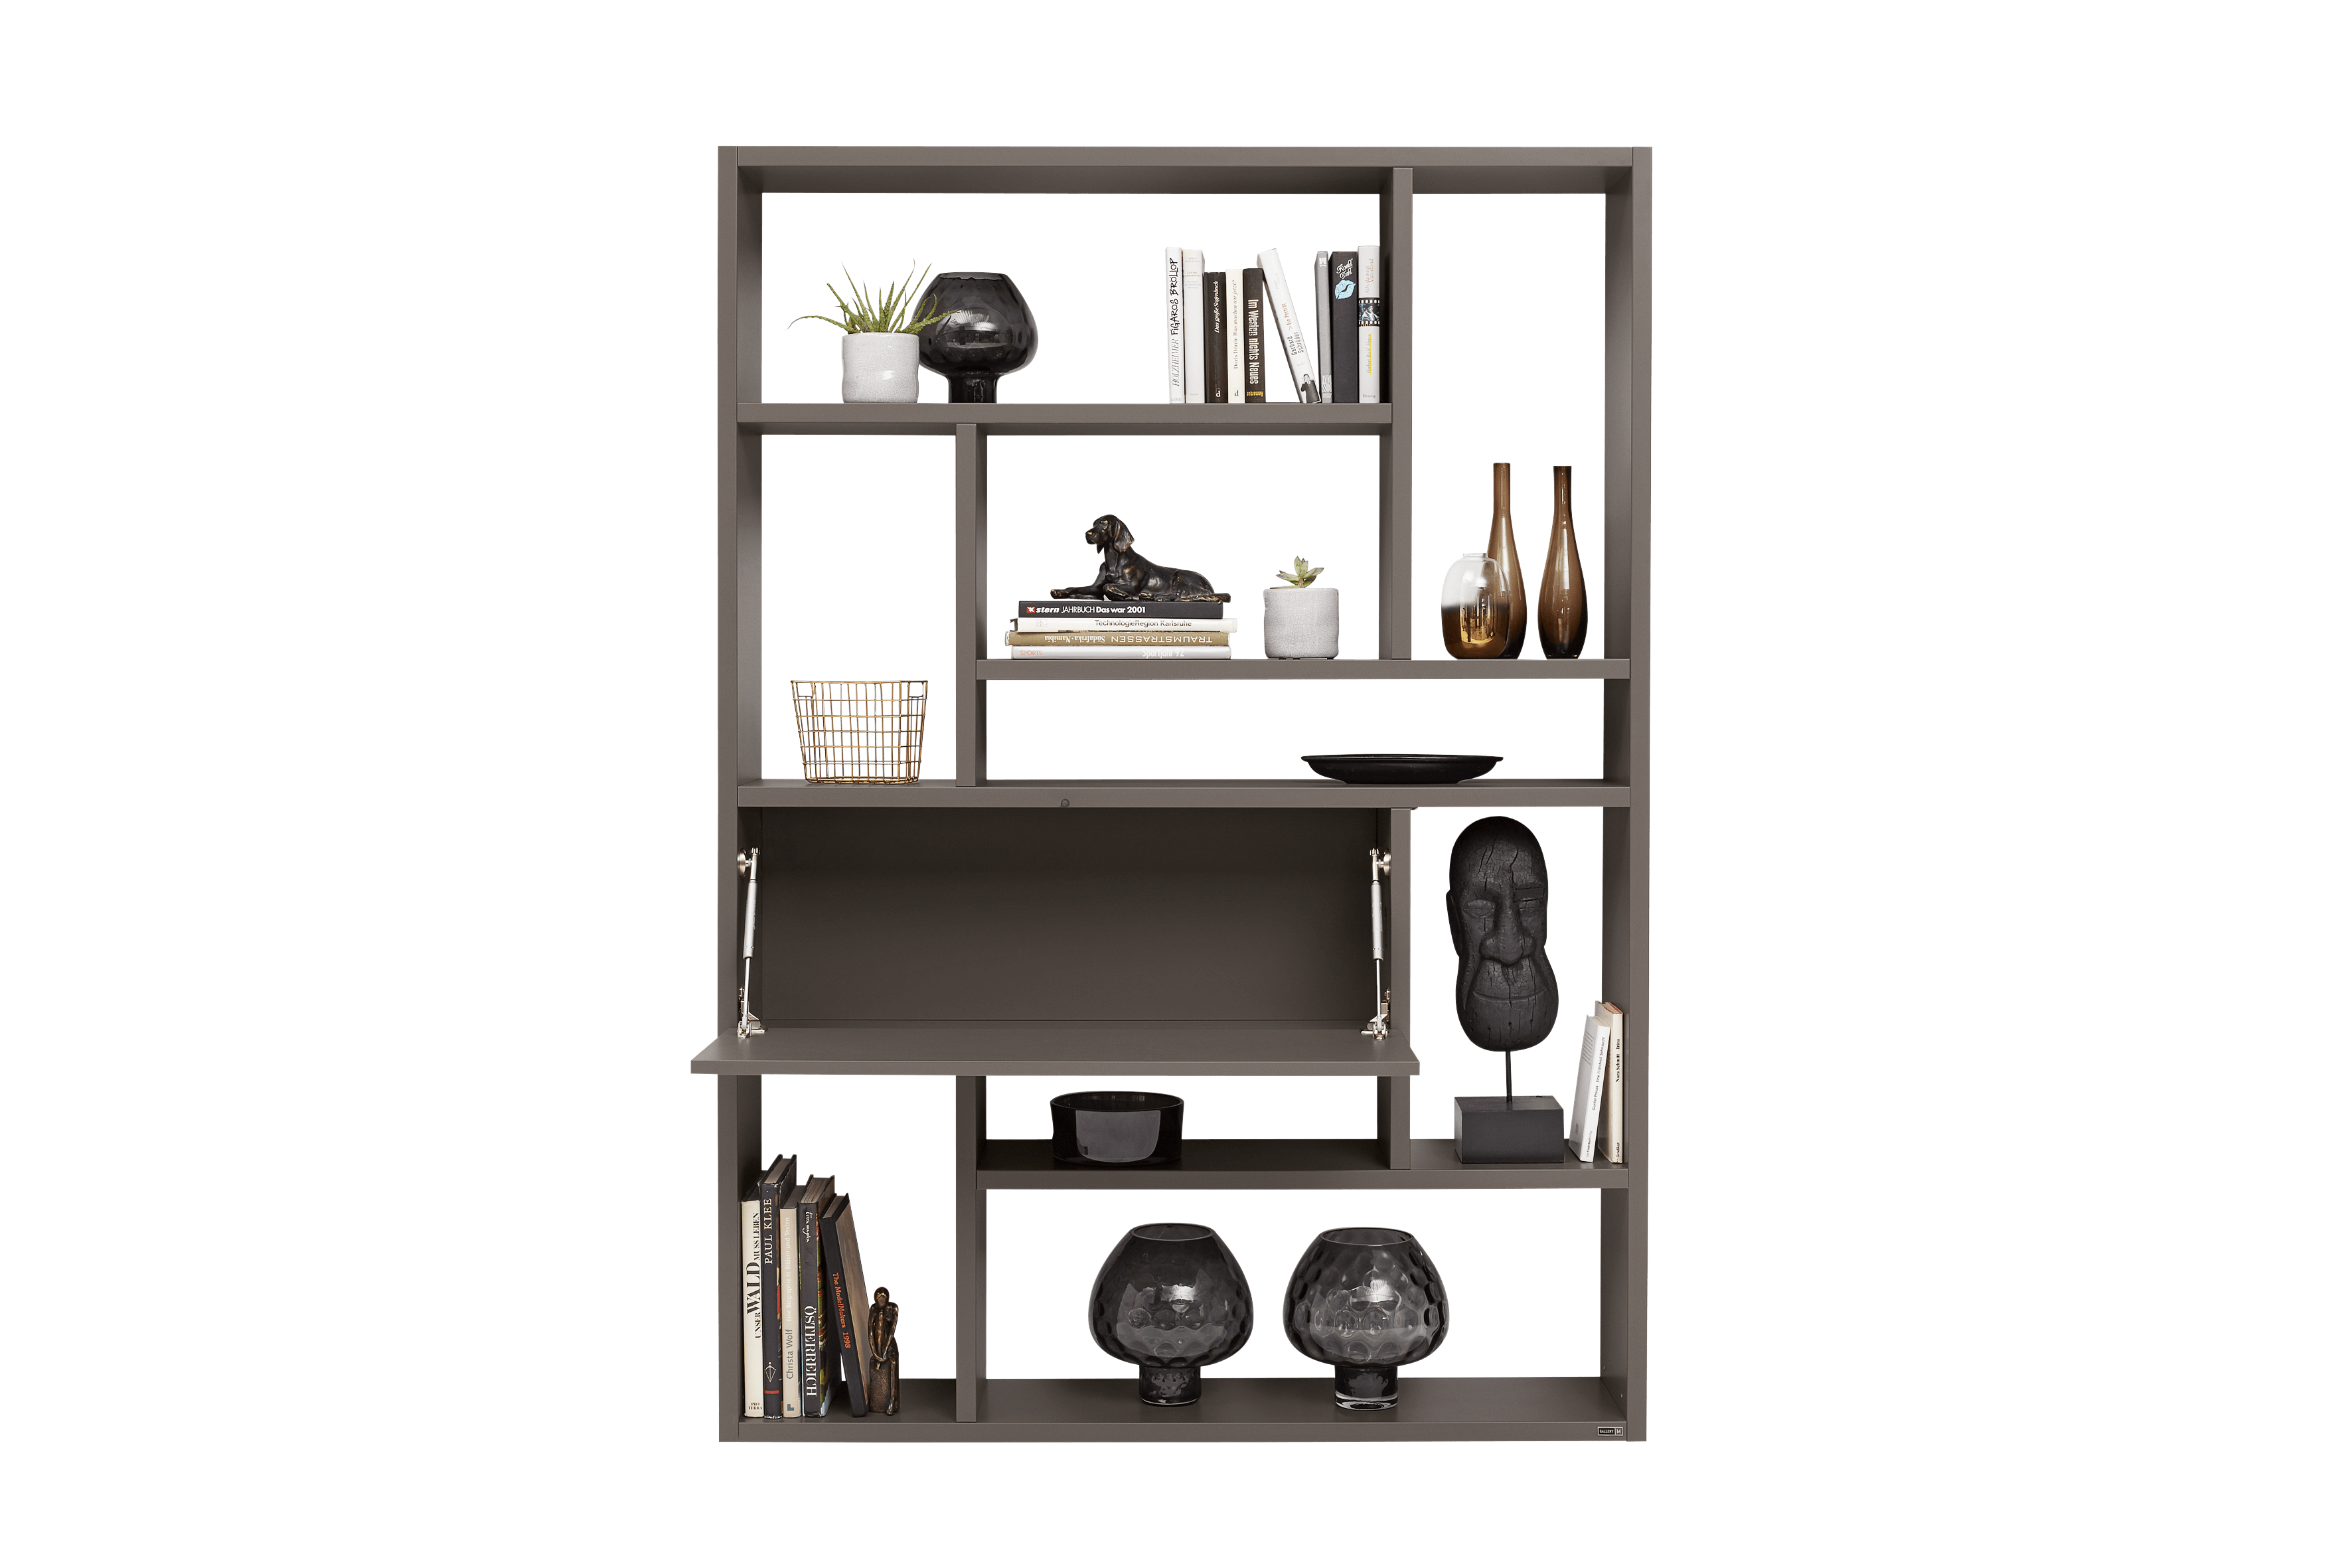 merano regale merano wohnm bel shop gallery m. Black Bedroom Furniture Sets. Home Design Ideas